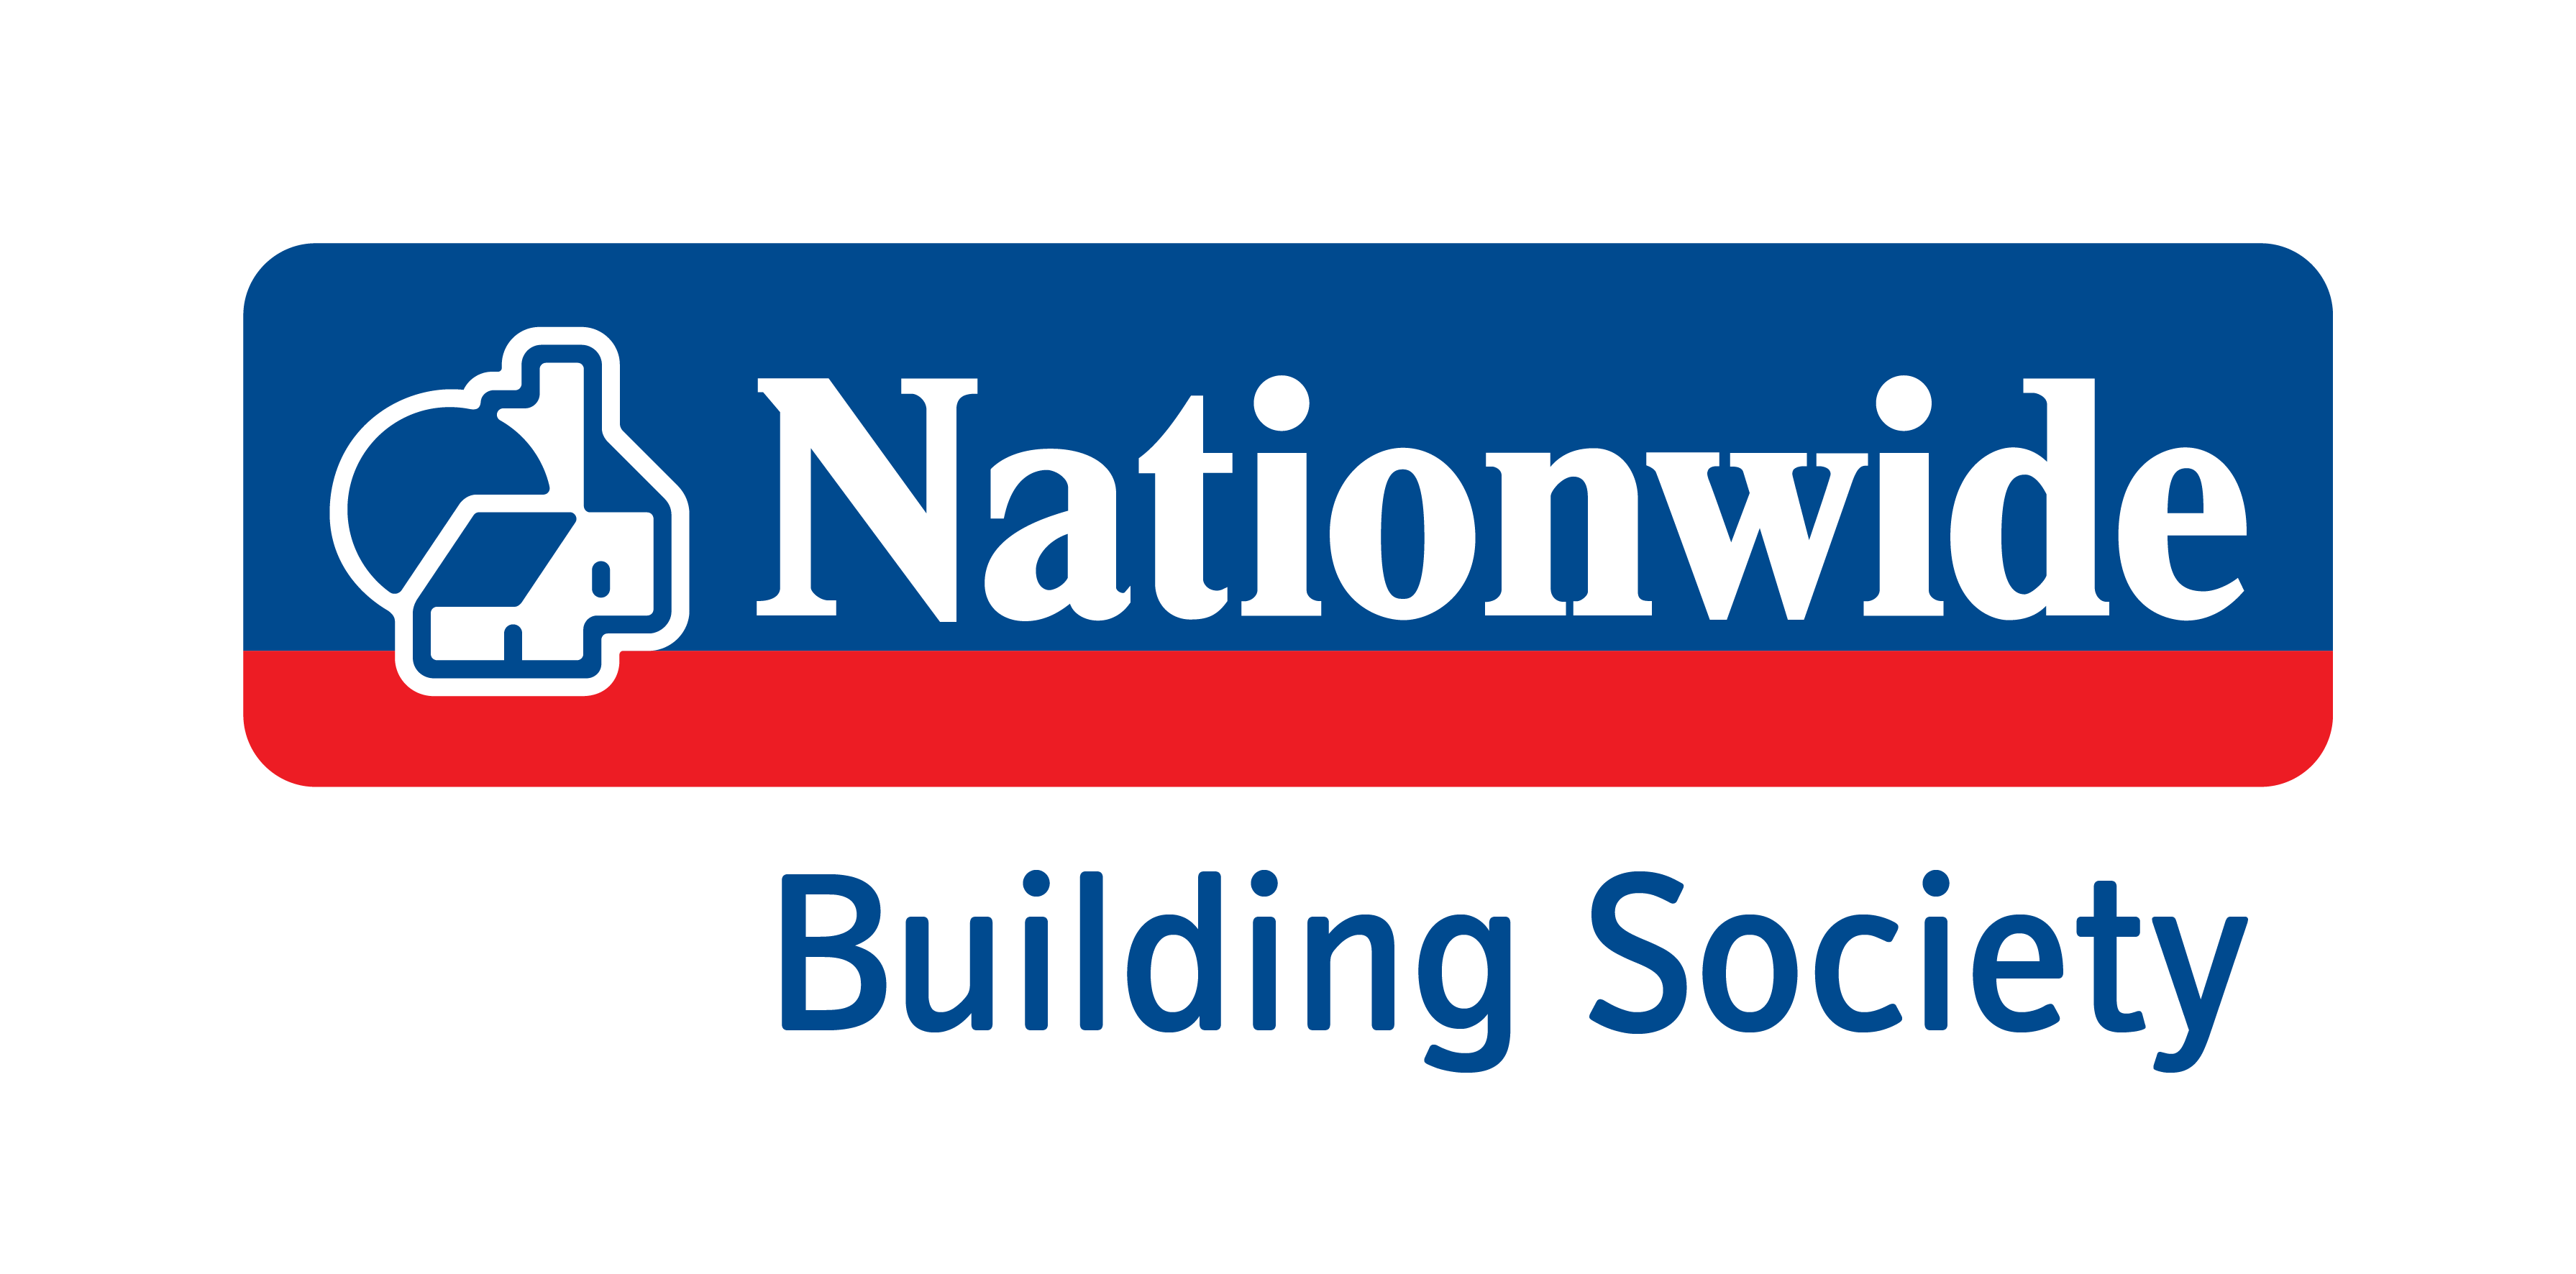 Nationwide-BS-Logo-sRGB.png